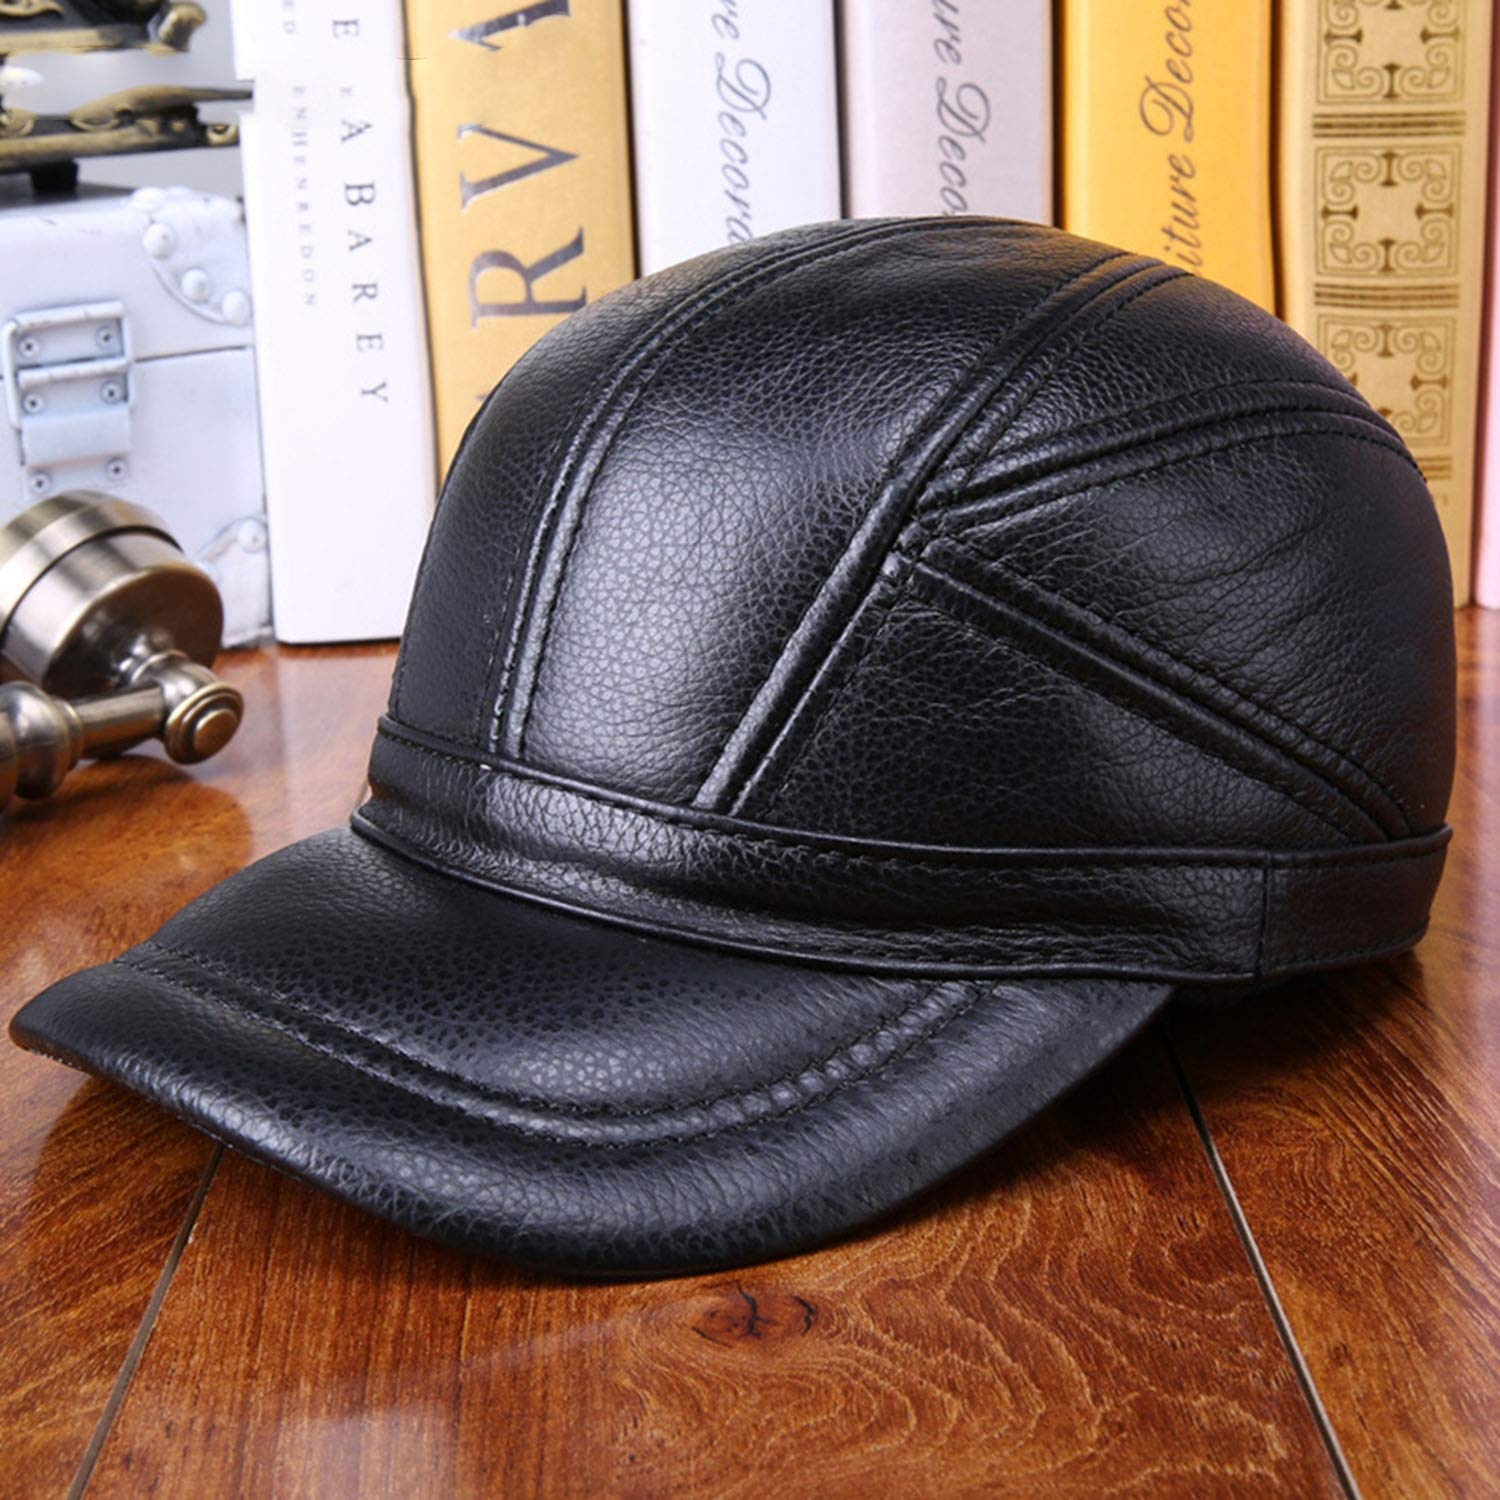 Zipok Real Leather Hat Baseball Caps Men Brown Adjustable Caps with Earflaps Dad Hat Male Winter Warm Baseball Hat